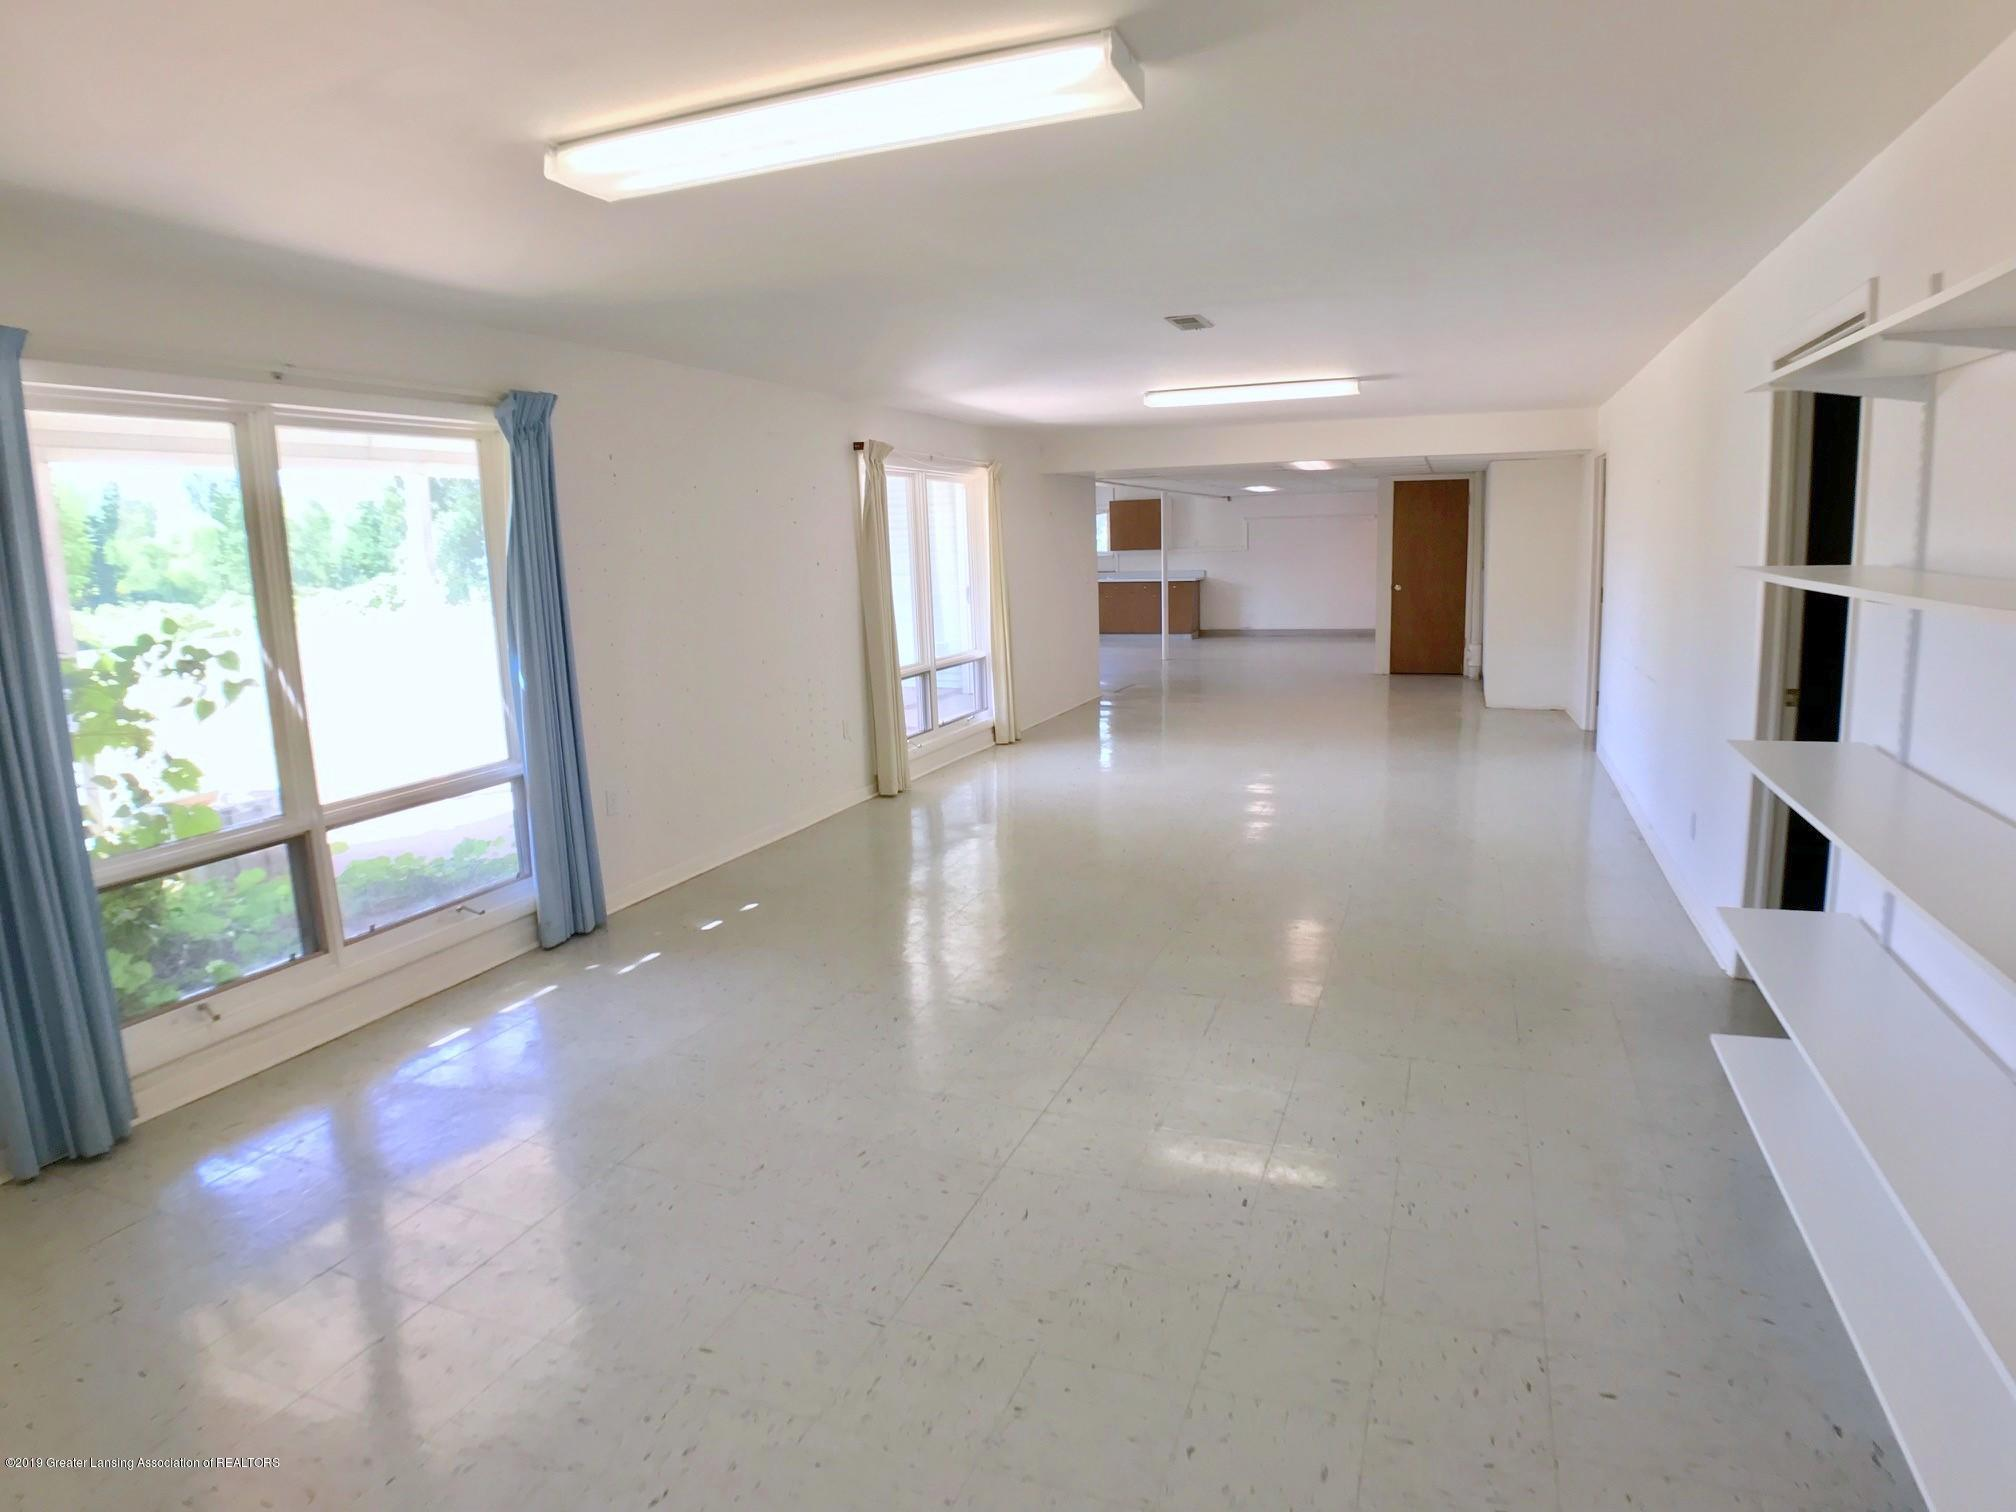 6523 W Hibbard Rd - Recreation Room - 28